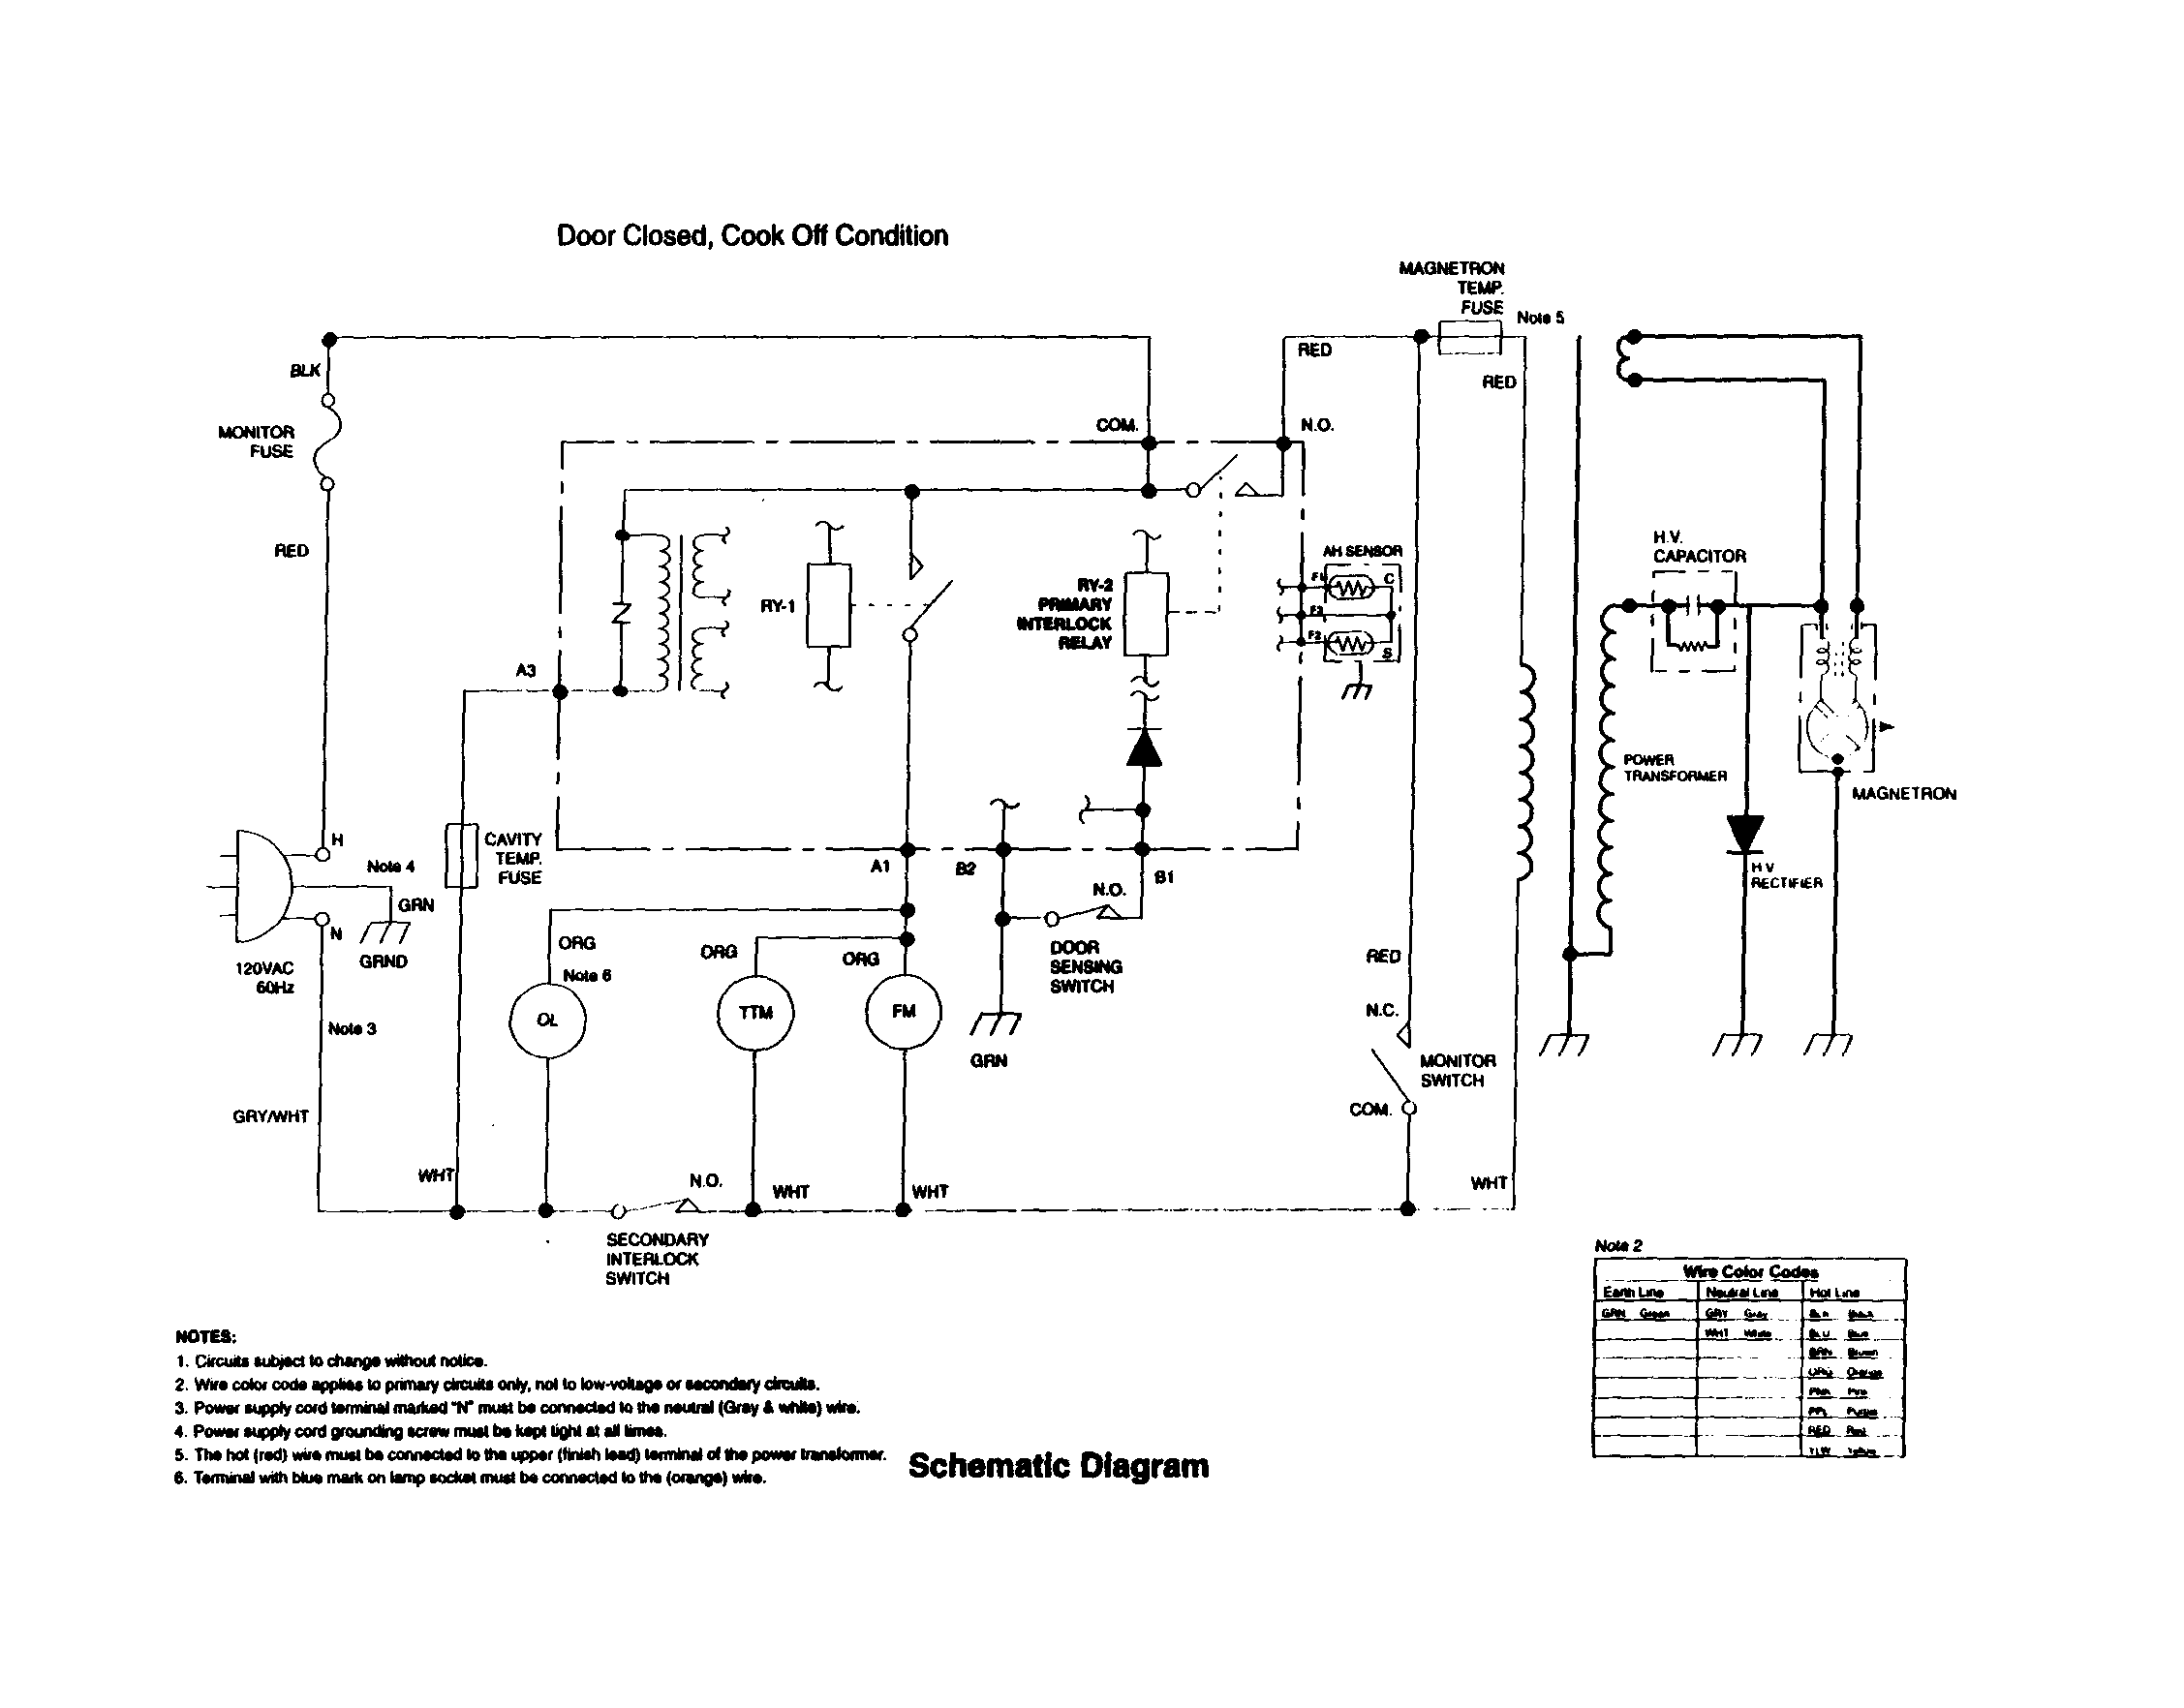 wiring a microwave wiring diagram all toggle switch wiring diagram diagram of a range schematic wiring #11